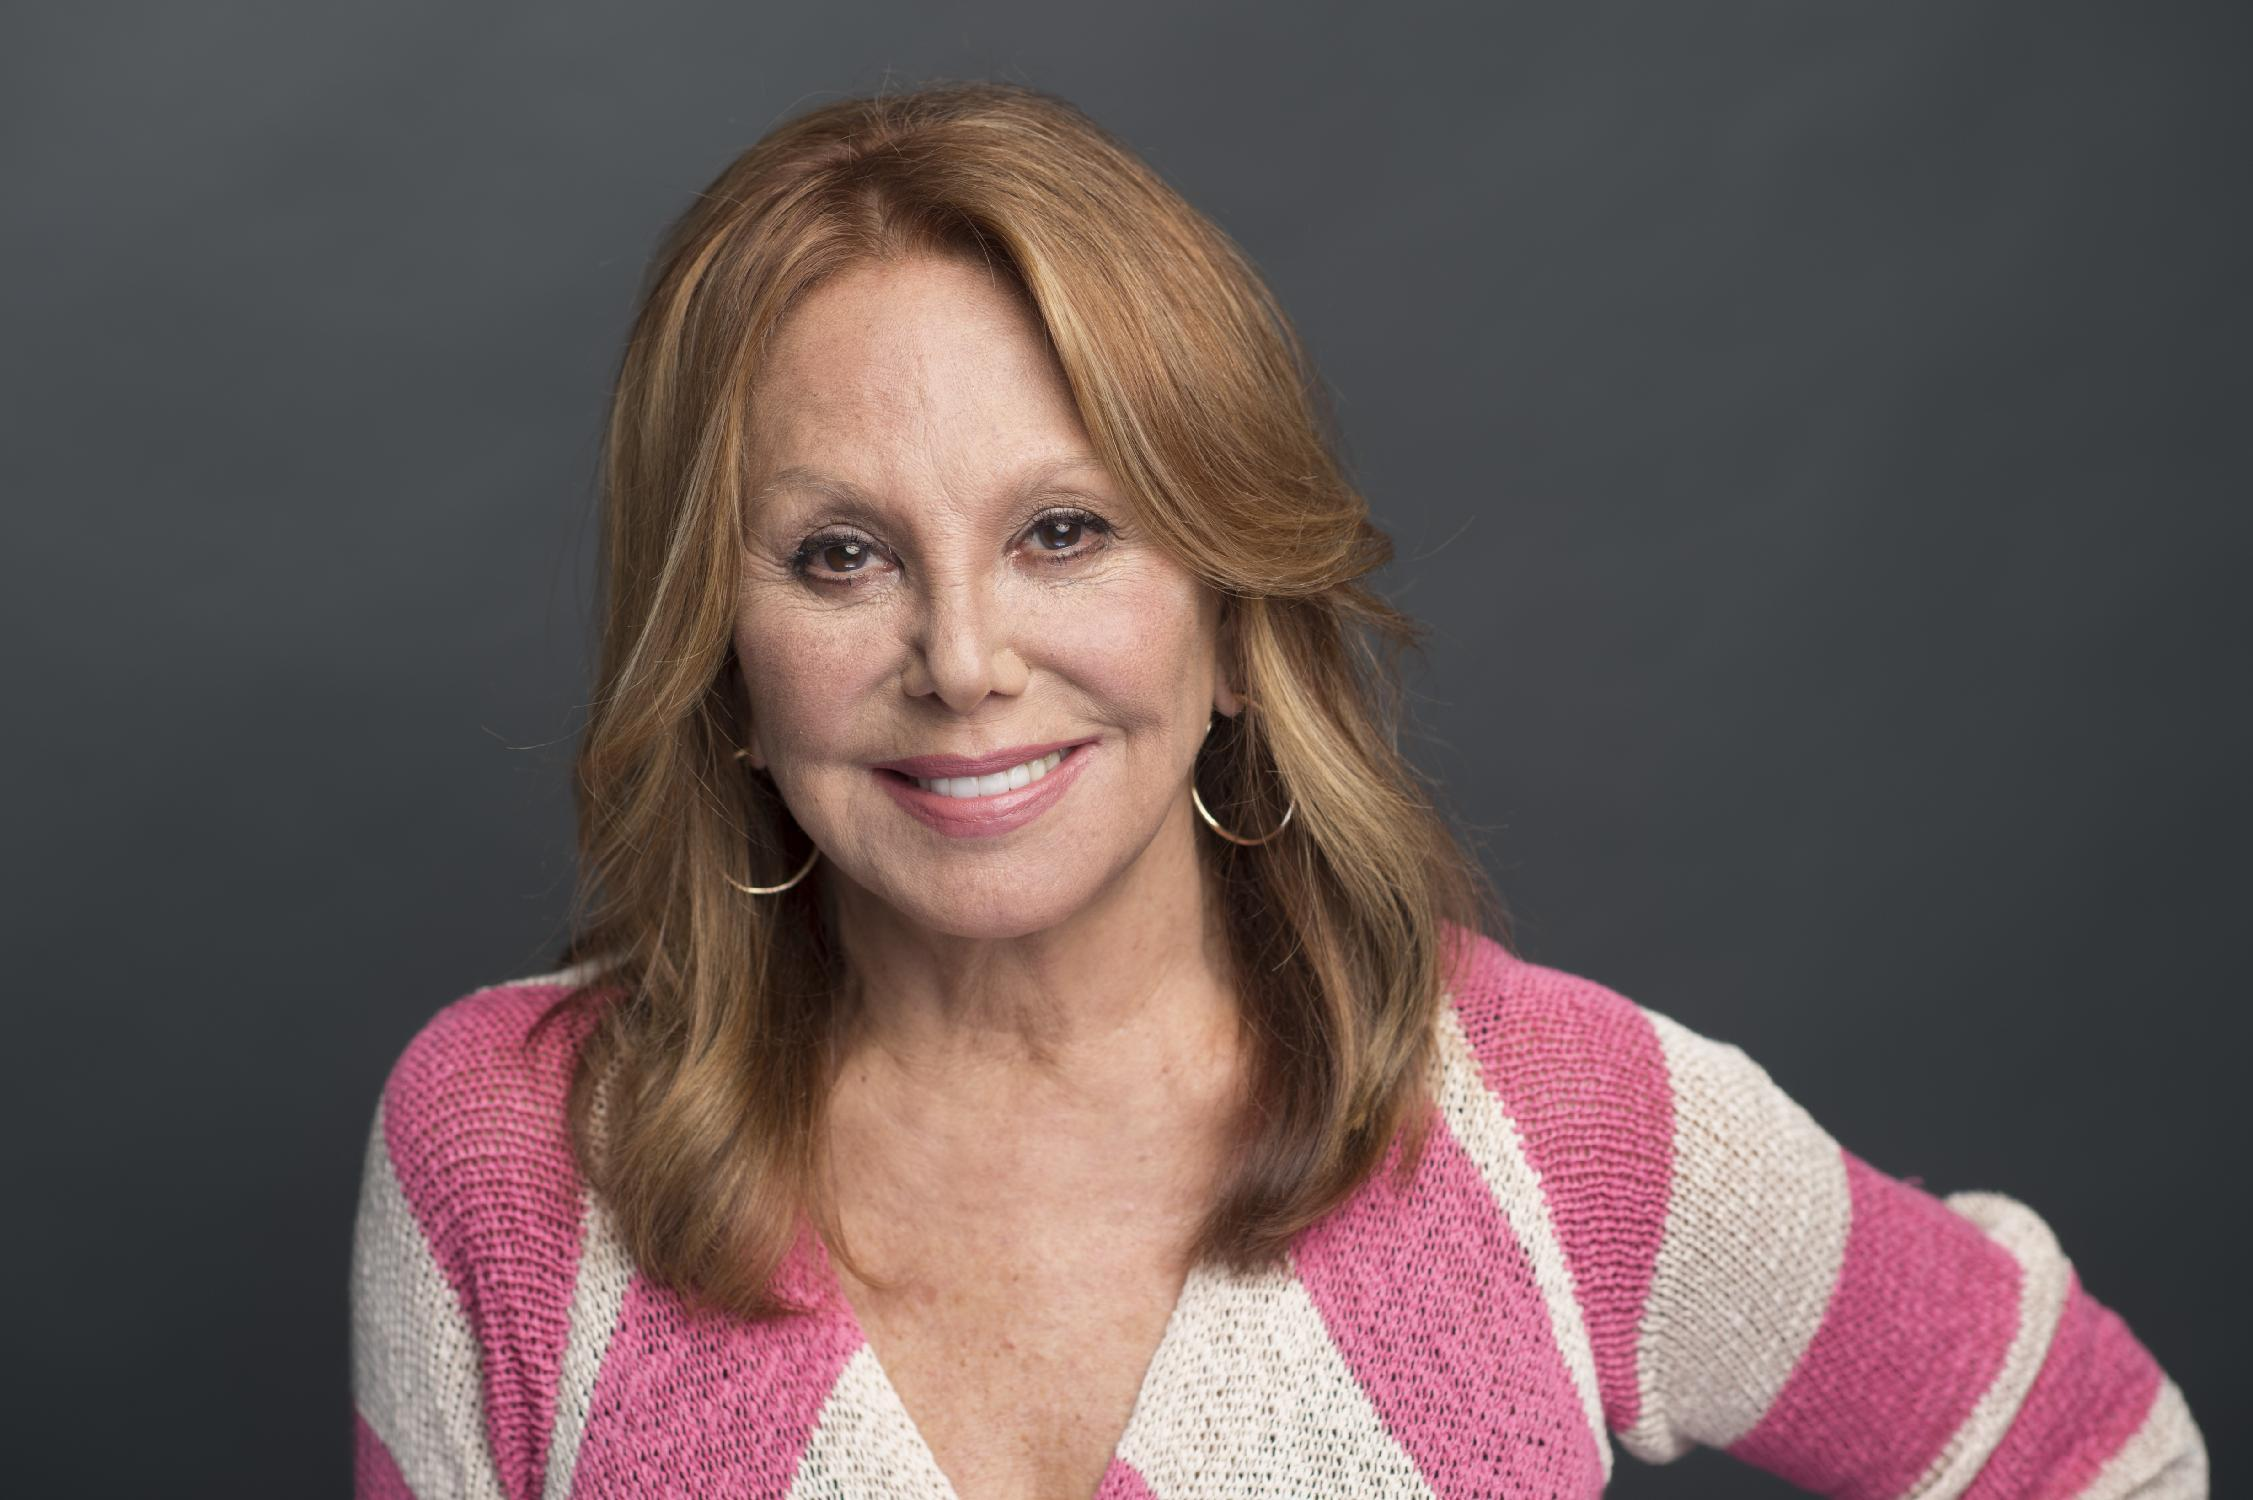 Marlo Thomas hopes change can happen from inside the closet